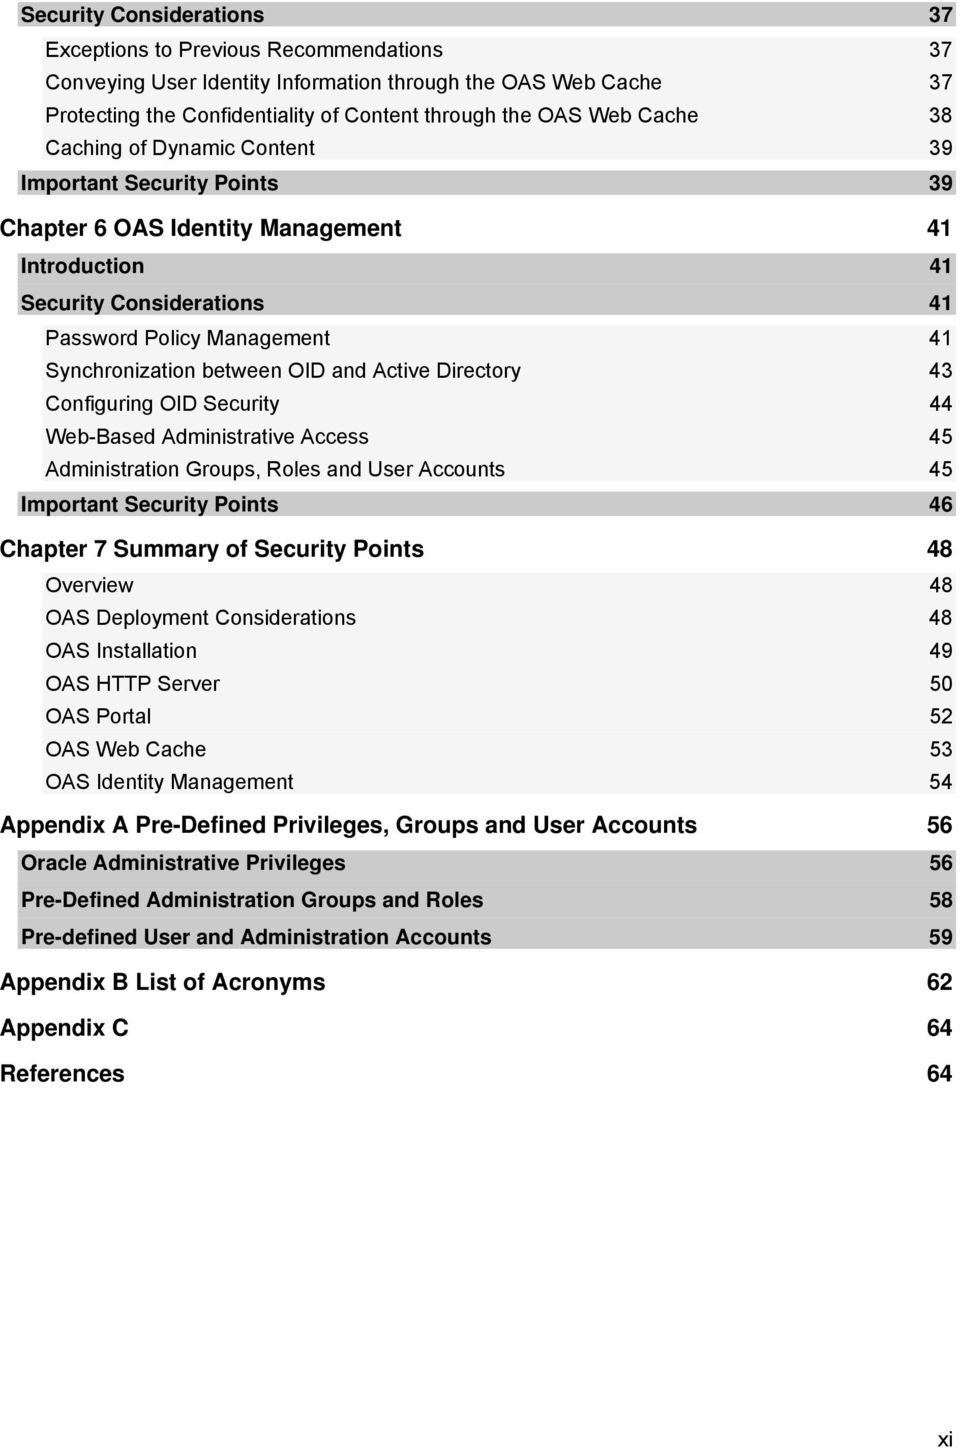 between OID and Active Directory 43 Configuring OID Security 44 Web-Based Administrative Access 45 Administration Groups, Roles and User Accounts 45 Important Security Points 46 Chapter 7 Summary of